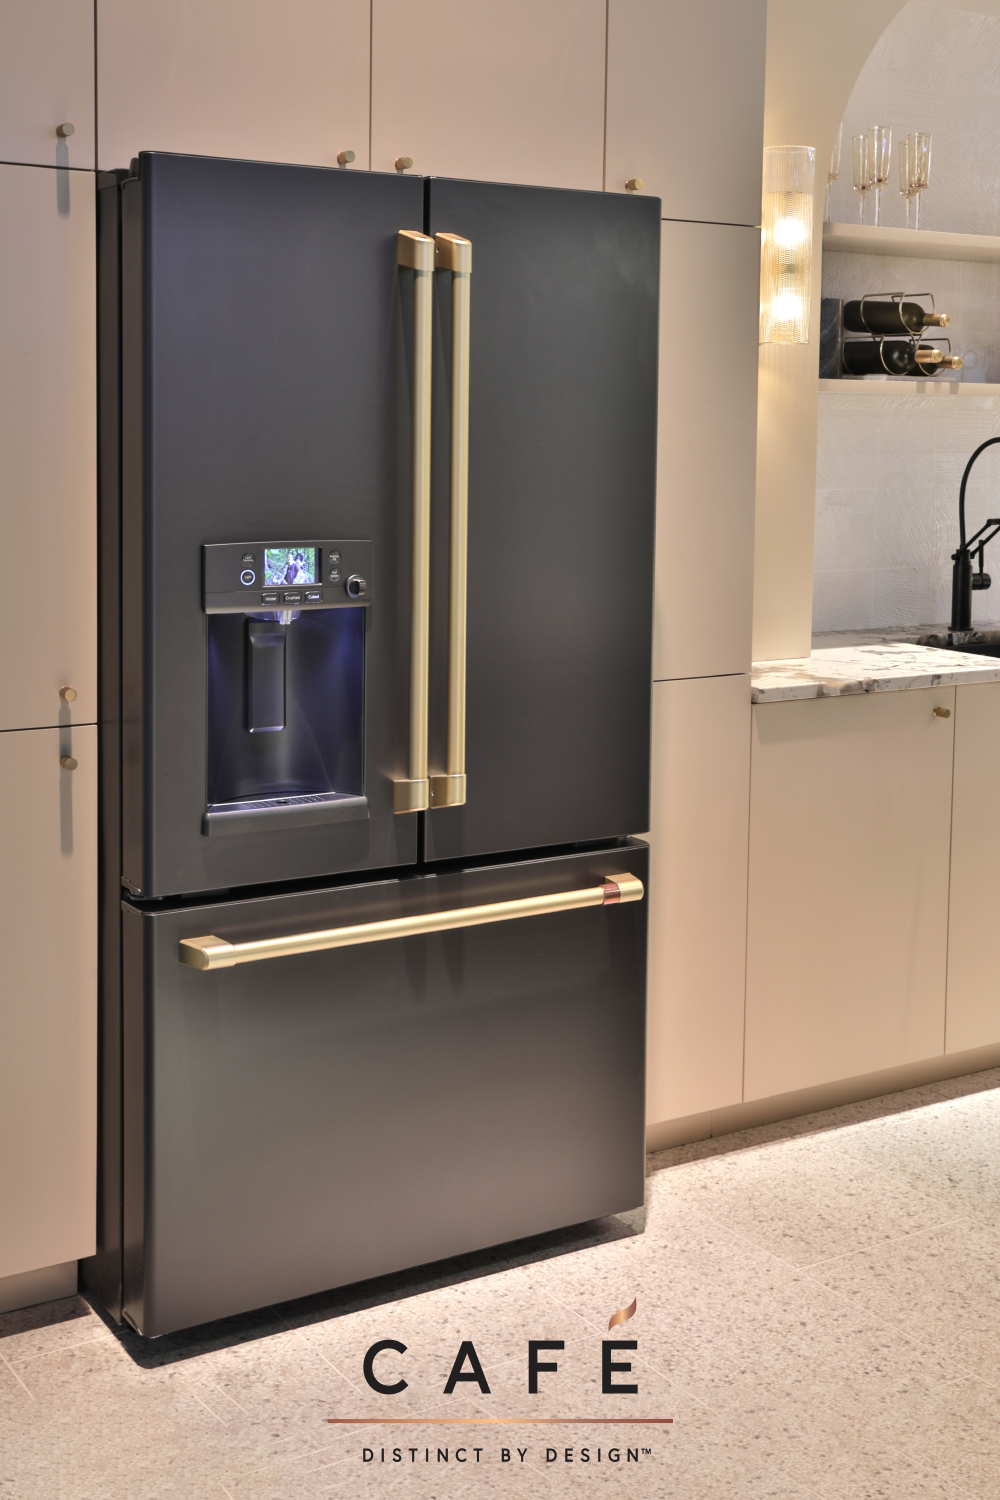 Our Cafe Matte Black Appliances Offer A Sleek Bold Look To Fit Your Style In 2020 Professional Kitchen Appliances Black Appliances Matte Black